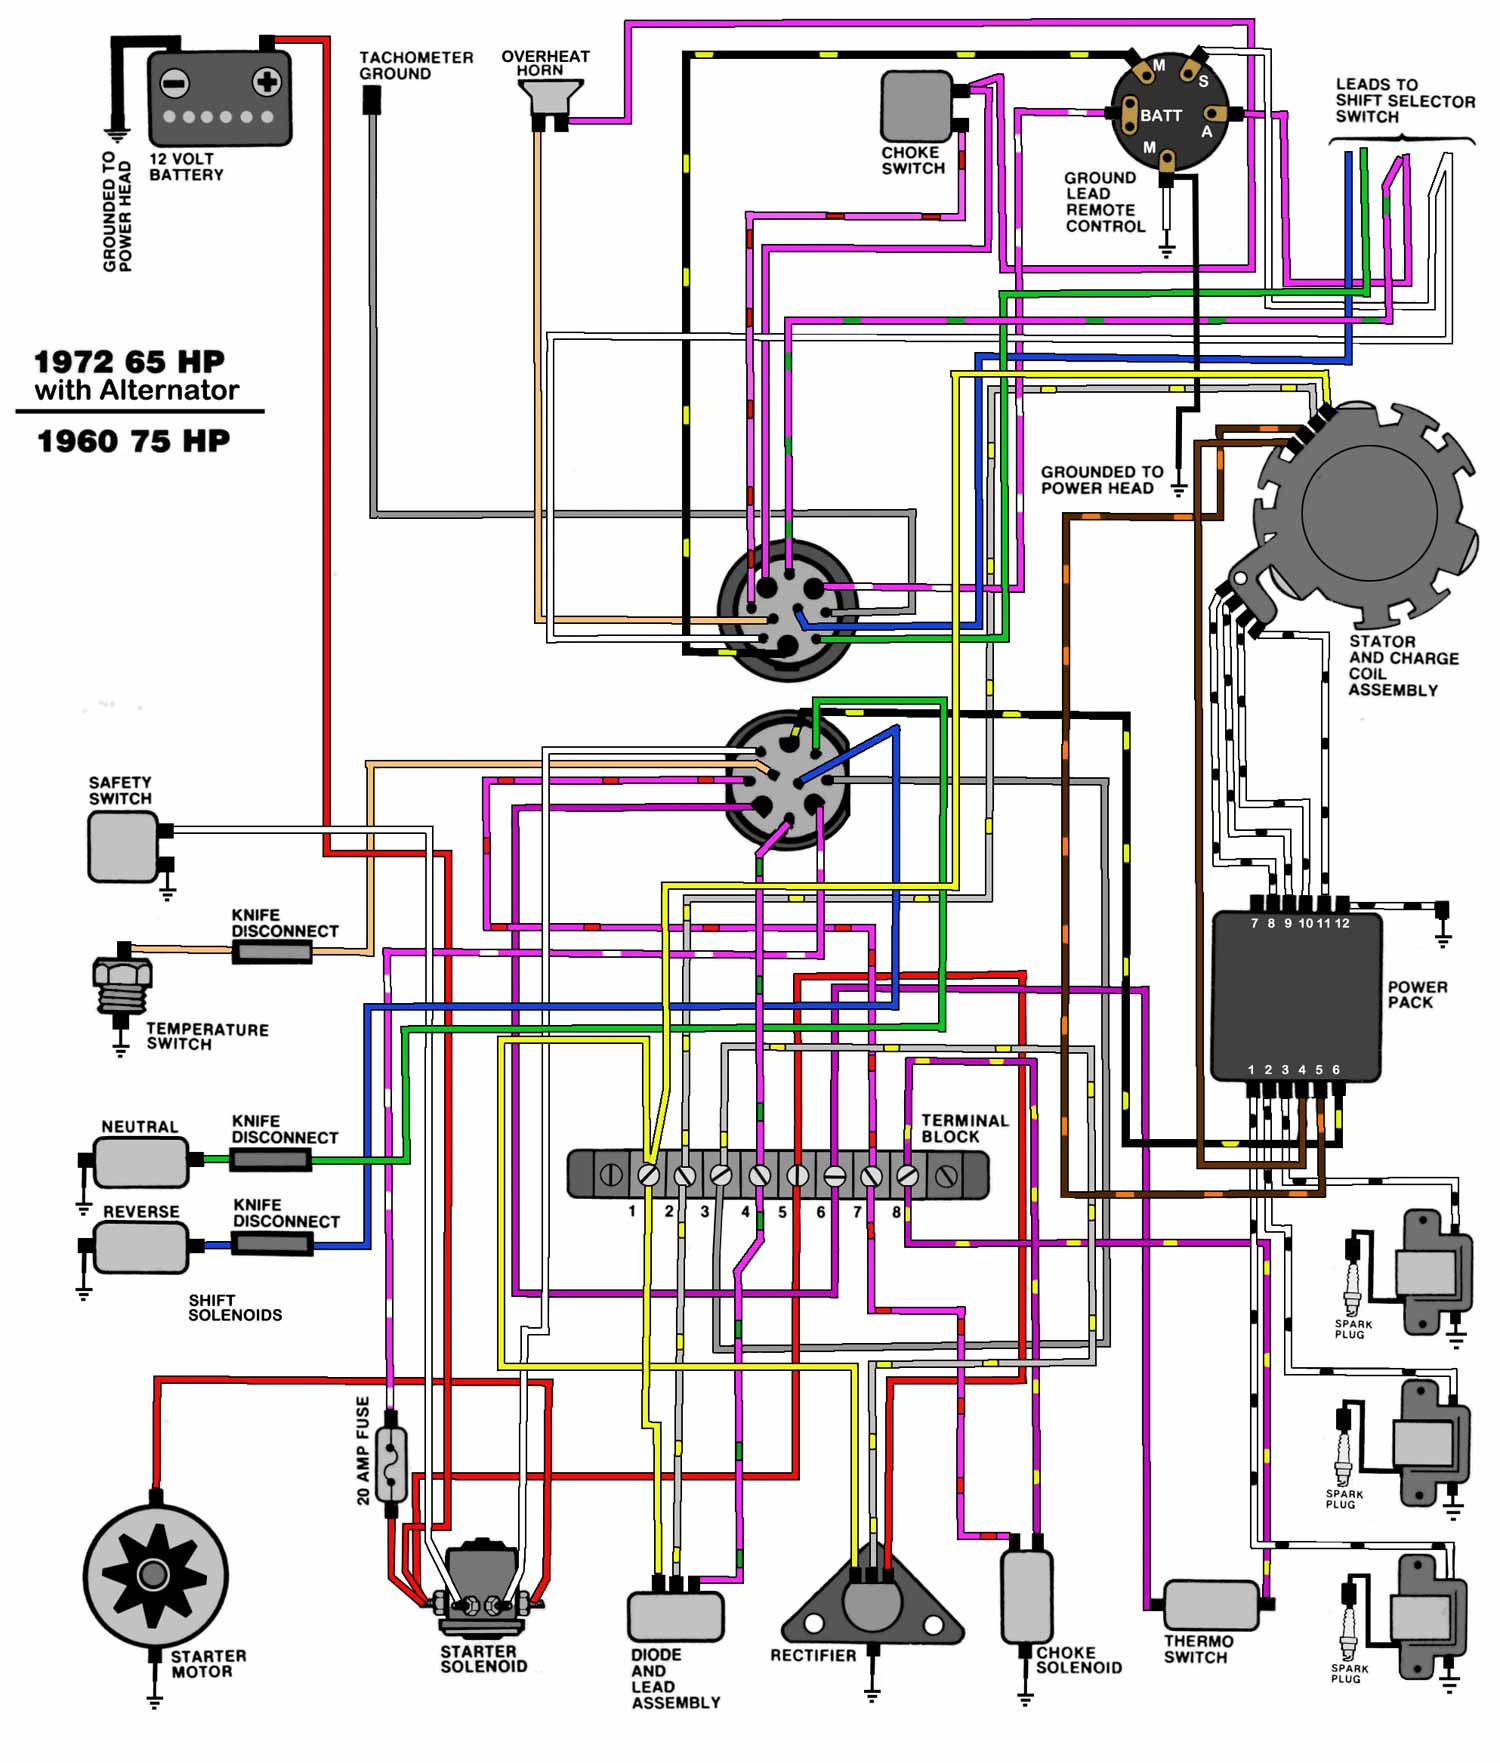 hight resolution of wiring harness diagram 85 40 hp mariner wiring diagram name mariner 30 hp wiring diagram mariner wiring diagram